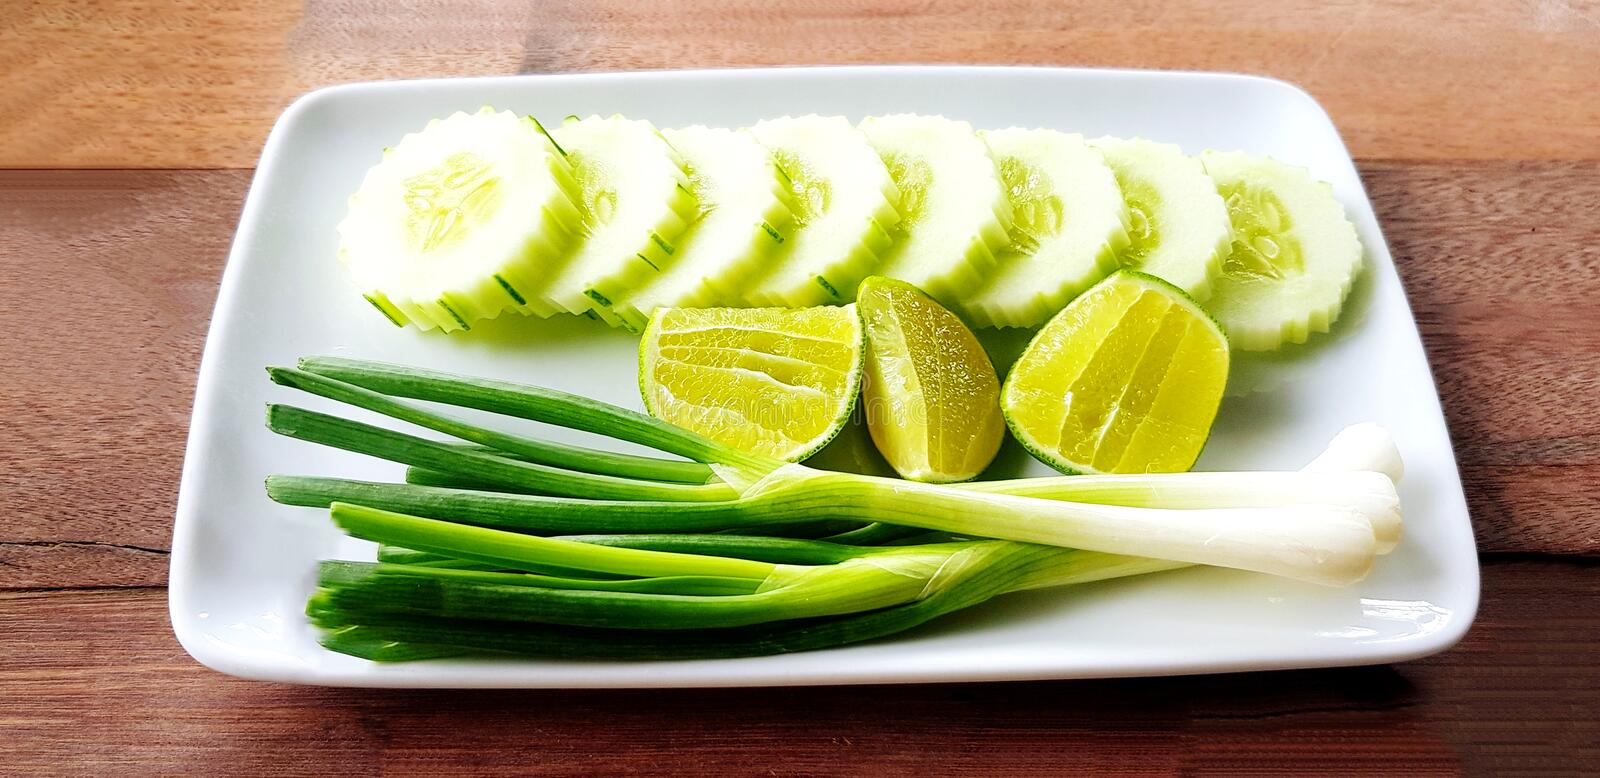 Fresh Scallion, sliced cucumber and lime or lemon in white plate on wooden table. Organic vegetable food and Harvest of agriculture concept stock photo